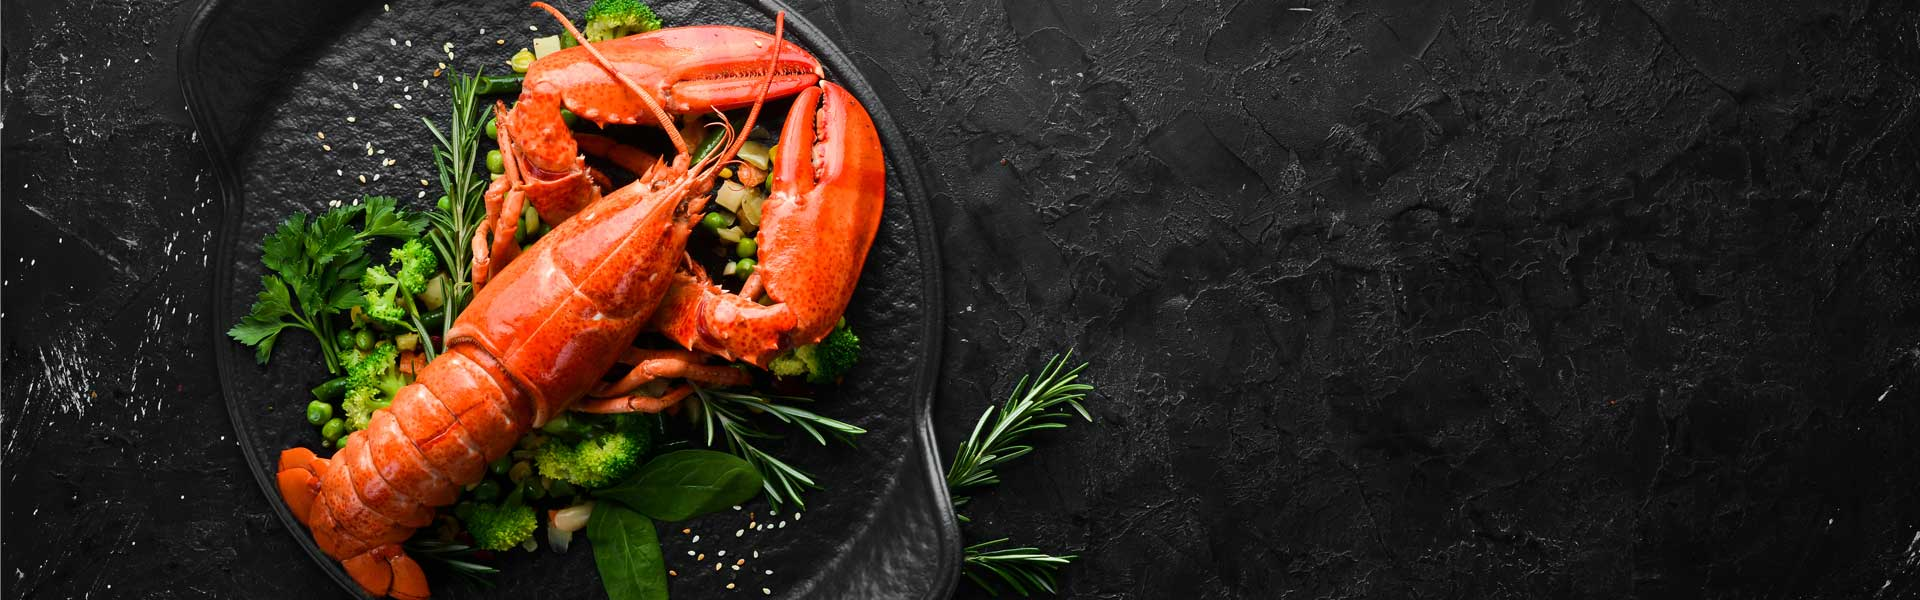 Cooked lobster, no difference between blue lobster and maine lobster